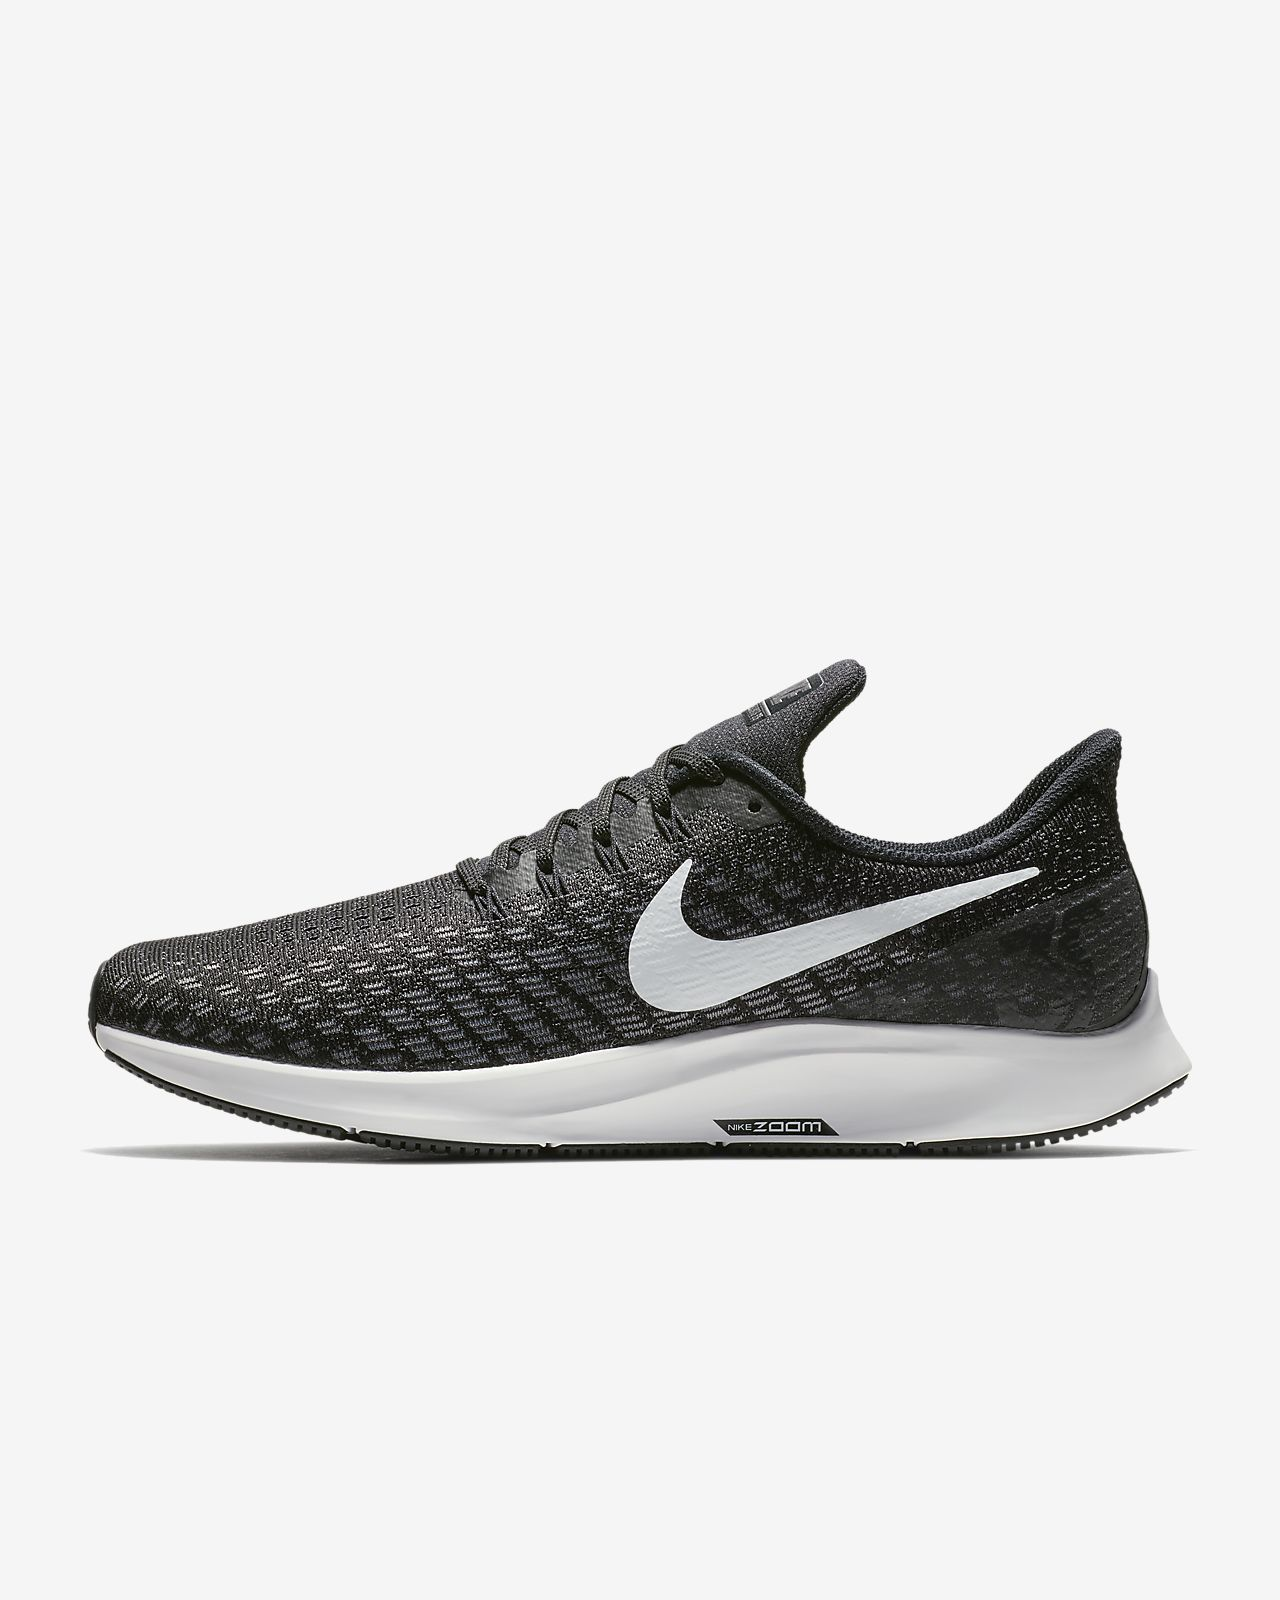 promo code fd2f0 ff903 ... Chaussure de running Nike Air Zoom Pegasus 35 pour Homme